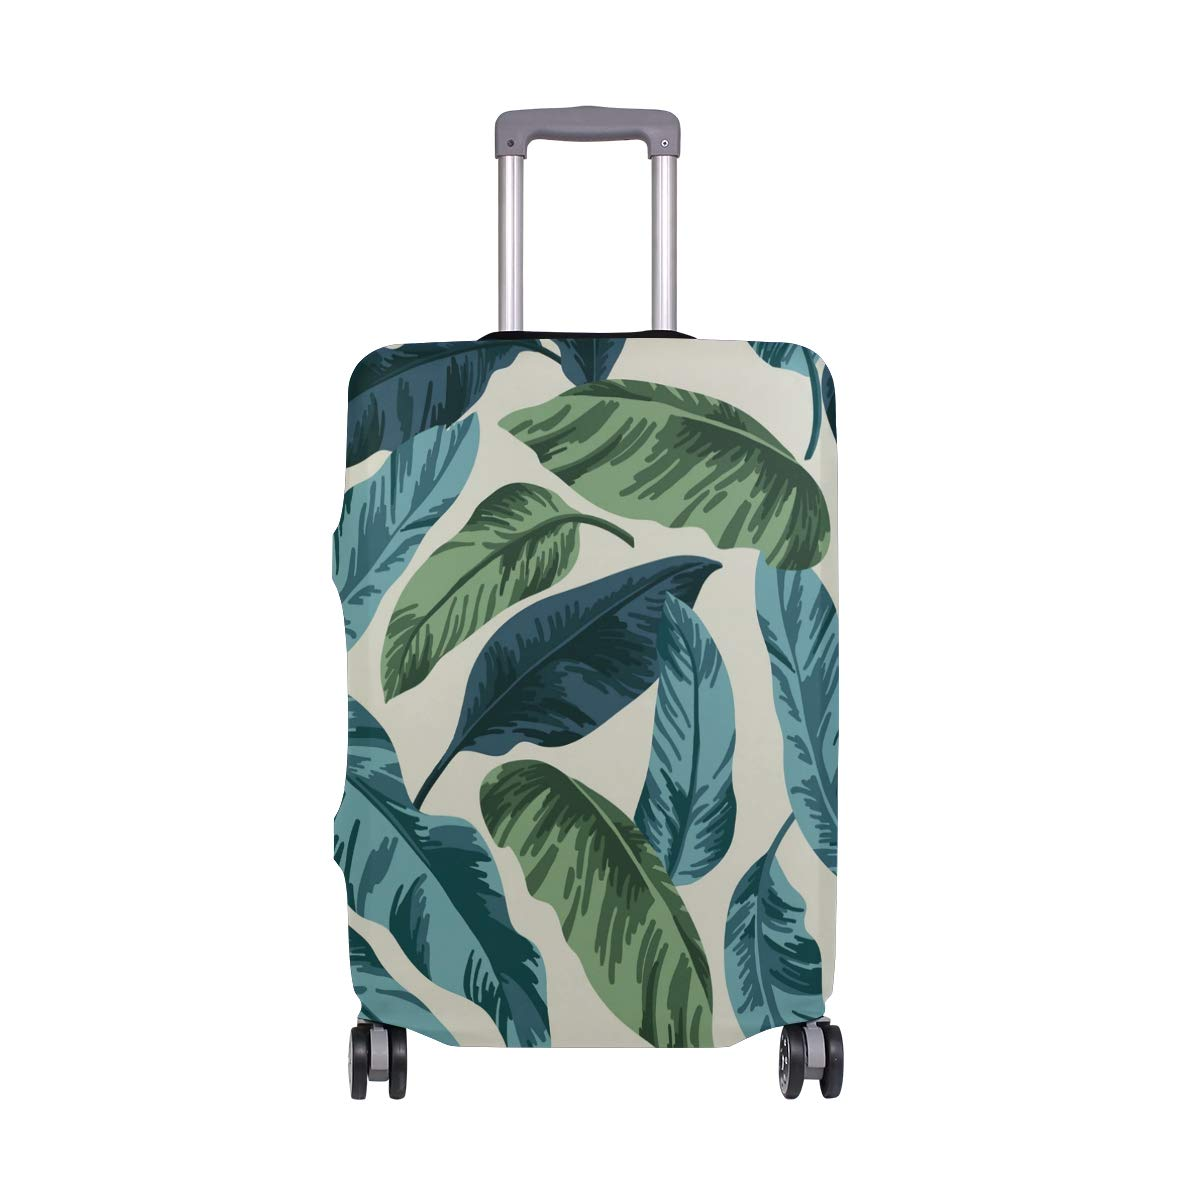 stylish small fresh waterproof personality universal wheel student business boarding suitcase 2 c scratch-resistant wear-resistant texture TSA customs lock PC MING REN Luggage Sets Trolley case